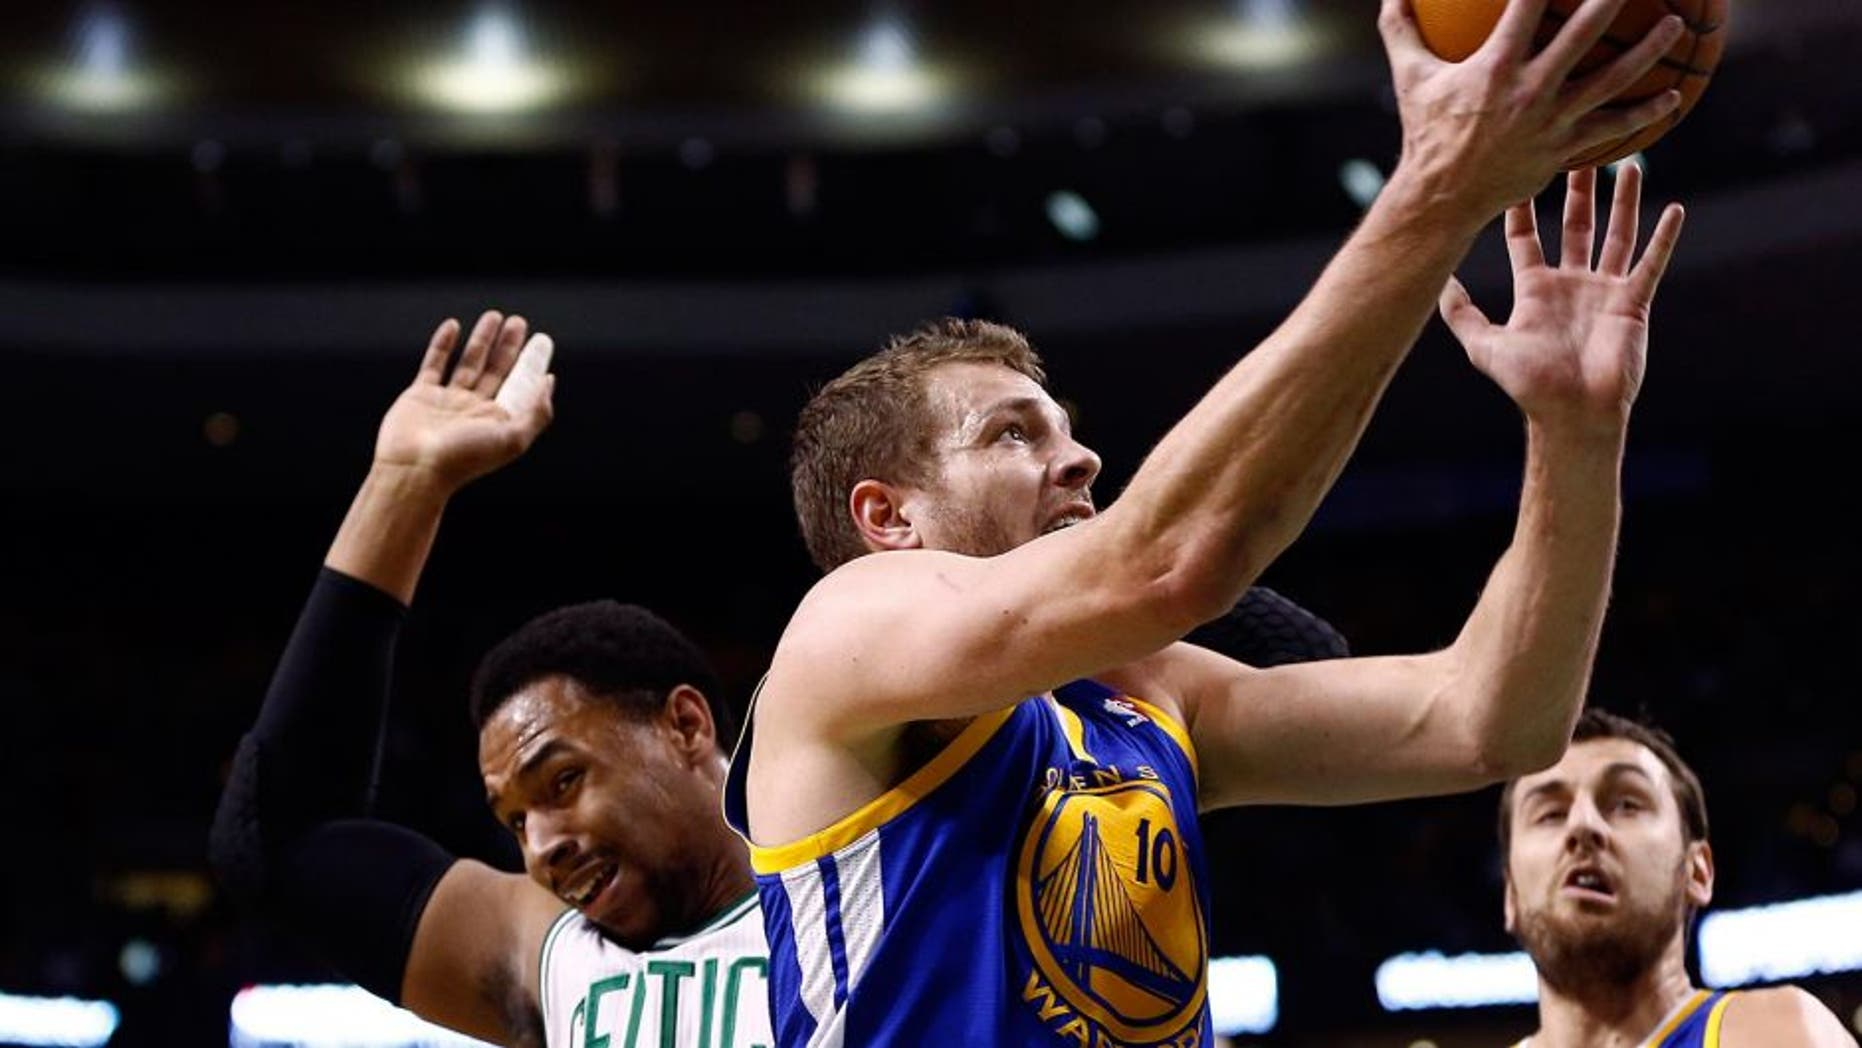 Mar 5, 2014; Boston, MA, USA; Golden State Warriors power forward David Lee (10) shoots the ball against Boston Celtics center Jared Sullinger (7) during the first half at TD Garden. Mandatory Credit: Mark L. Baer-USA TODAY Sports